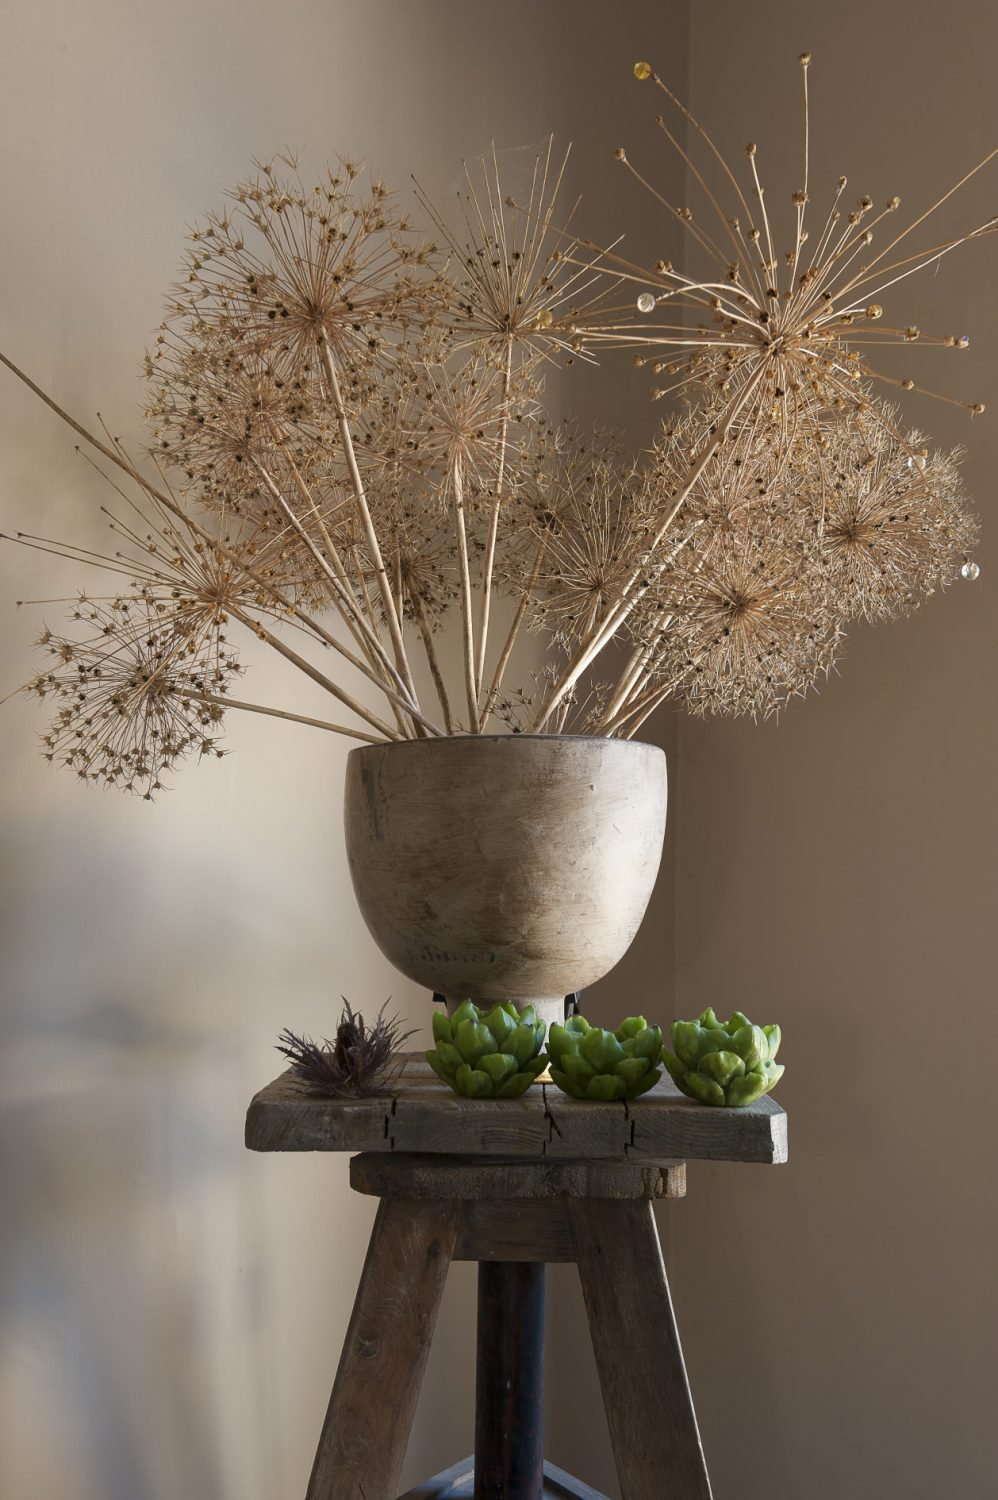 A sculptor's revolving plinth holds an arrangement of dried allium heads and artichoke-style candles